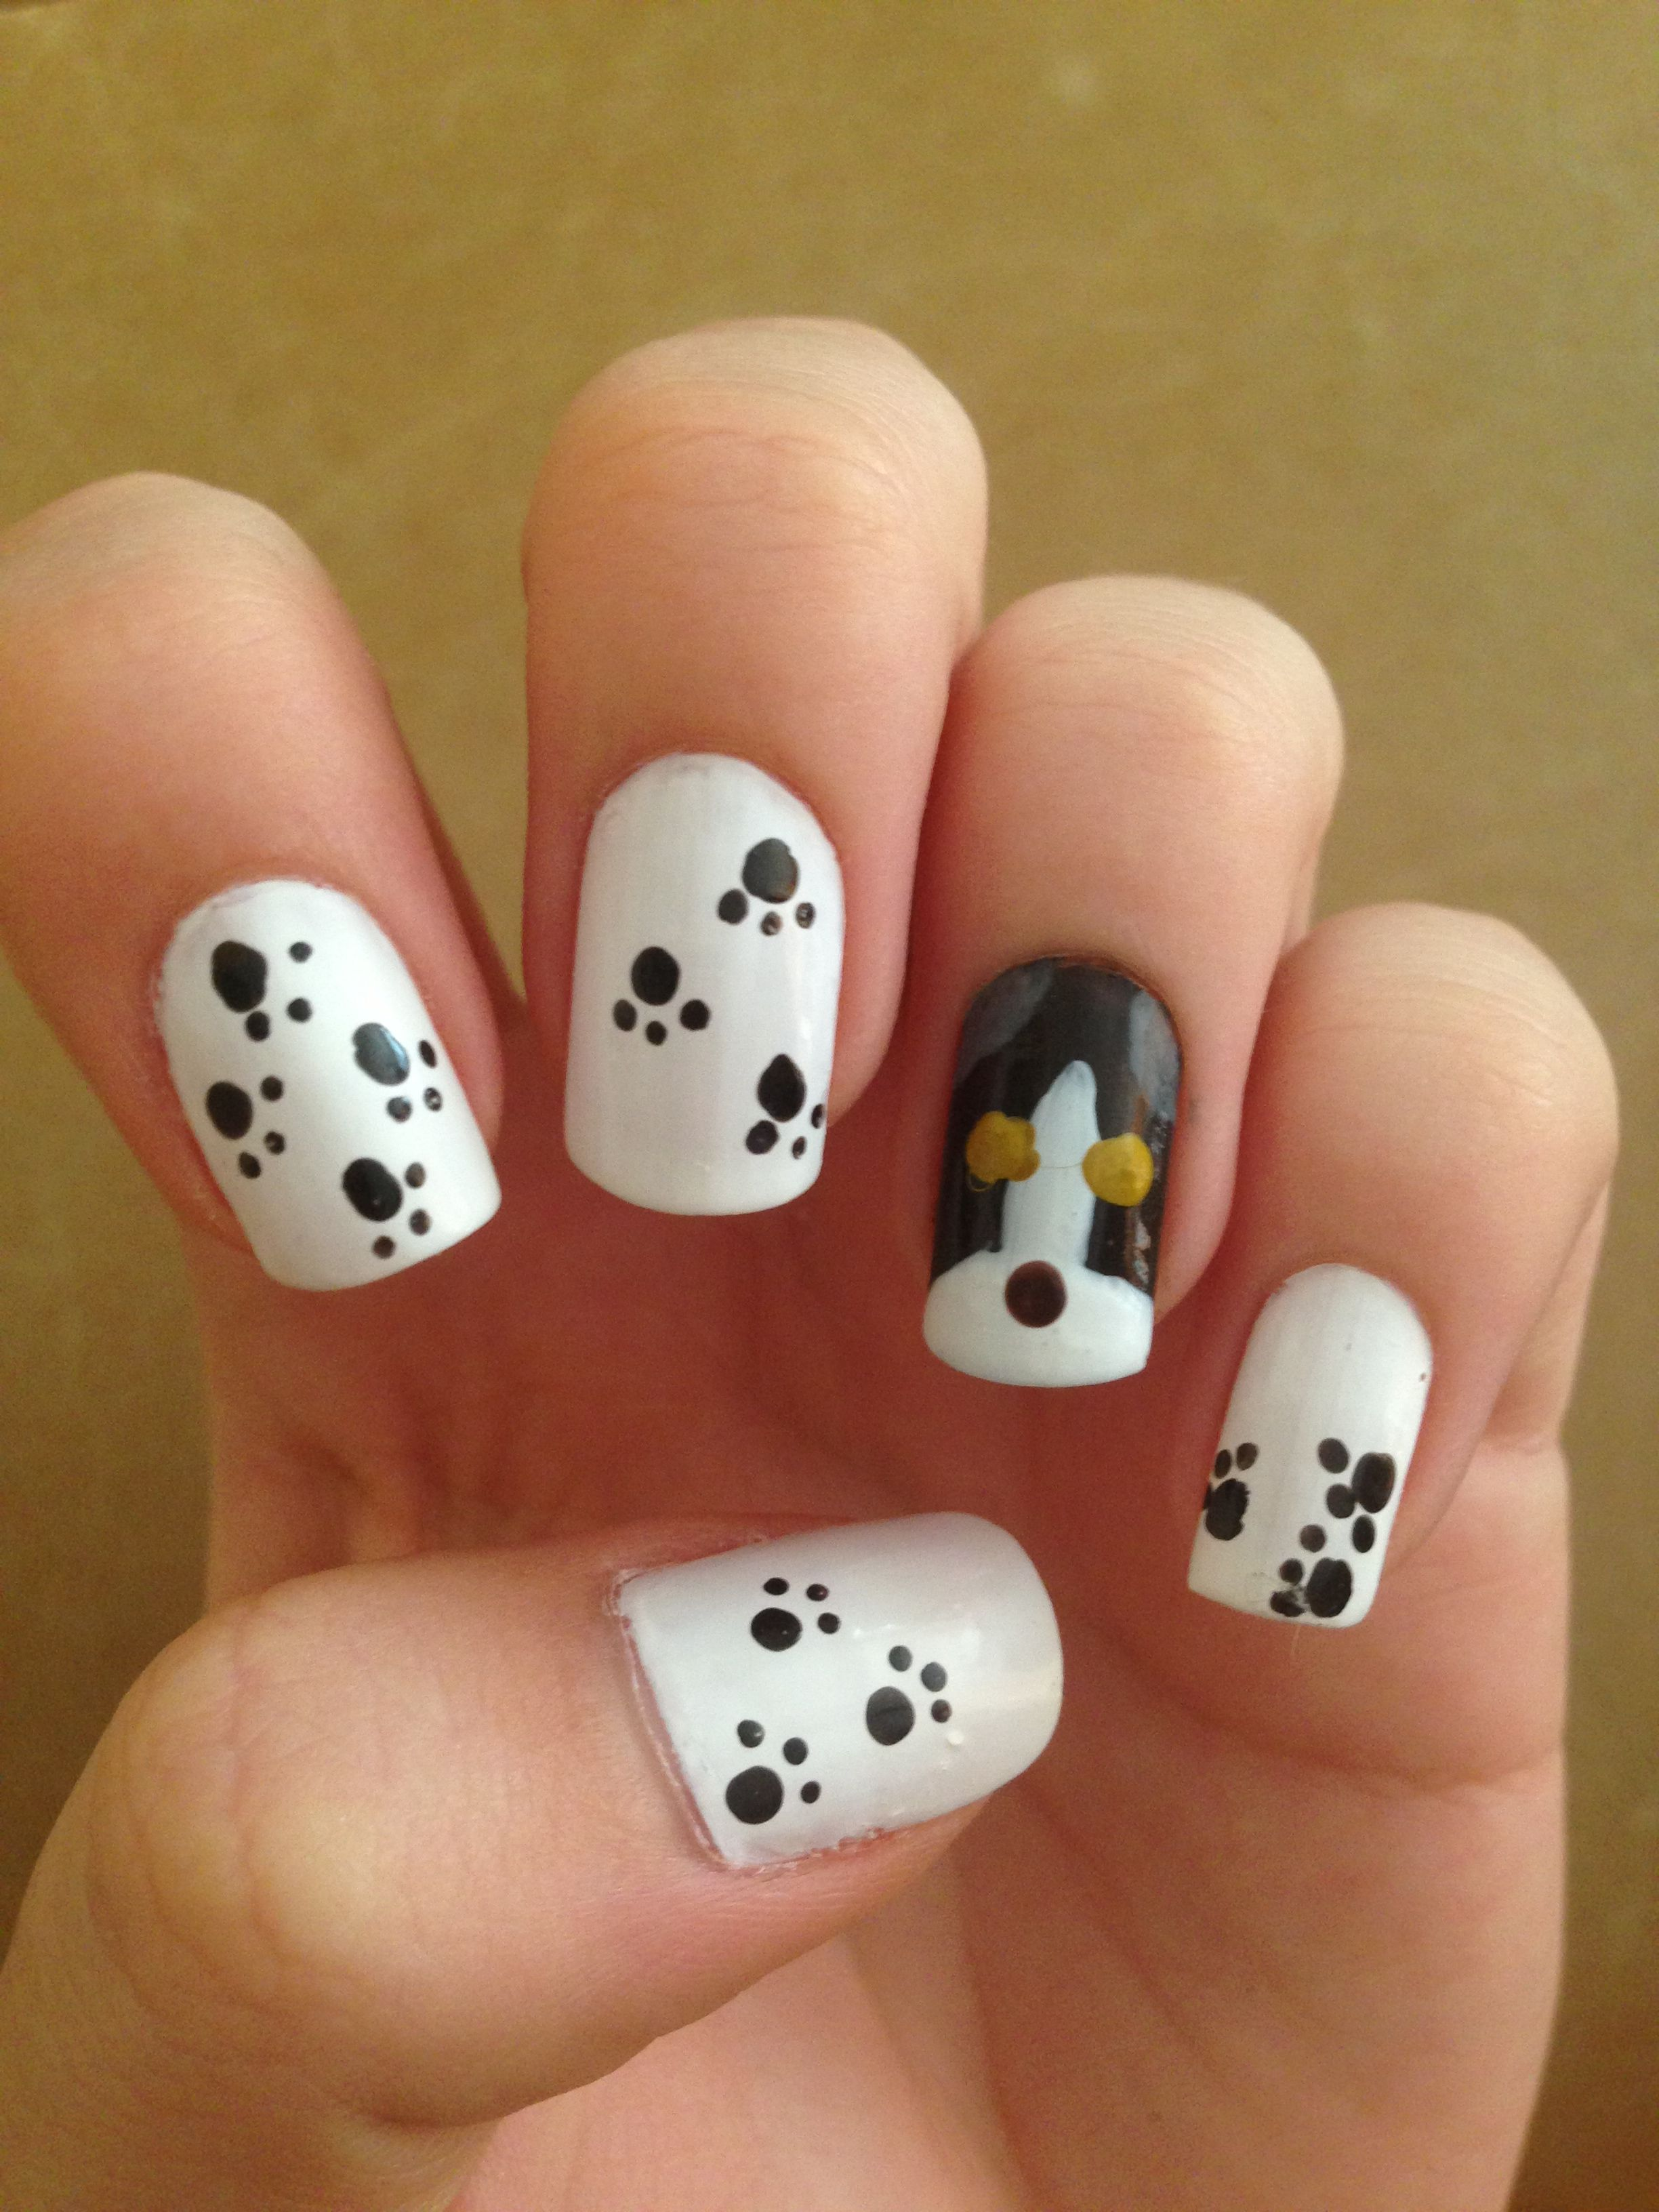 Uñas Semipermanentes Decoradas Paw Prints And Puppy Nail Art Pinterest Uñas Uñas